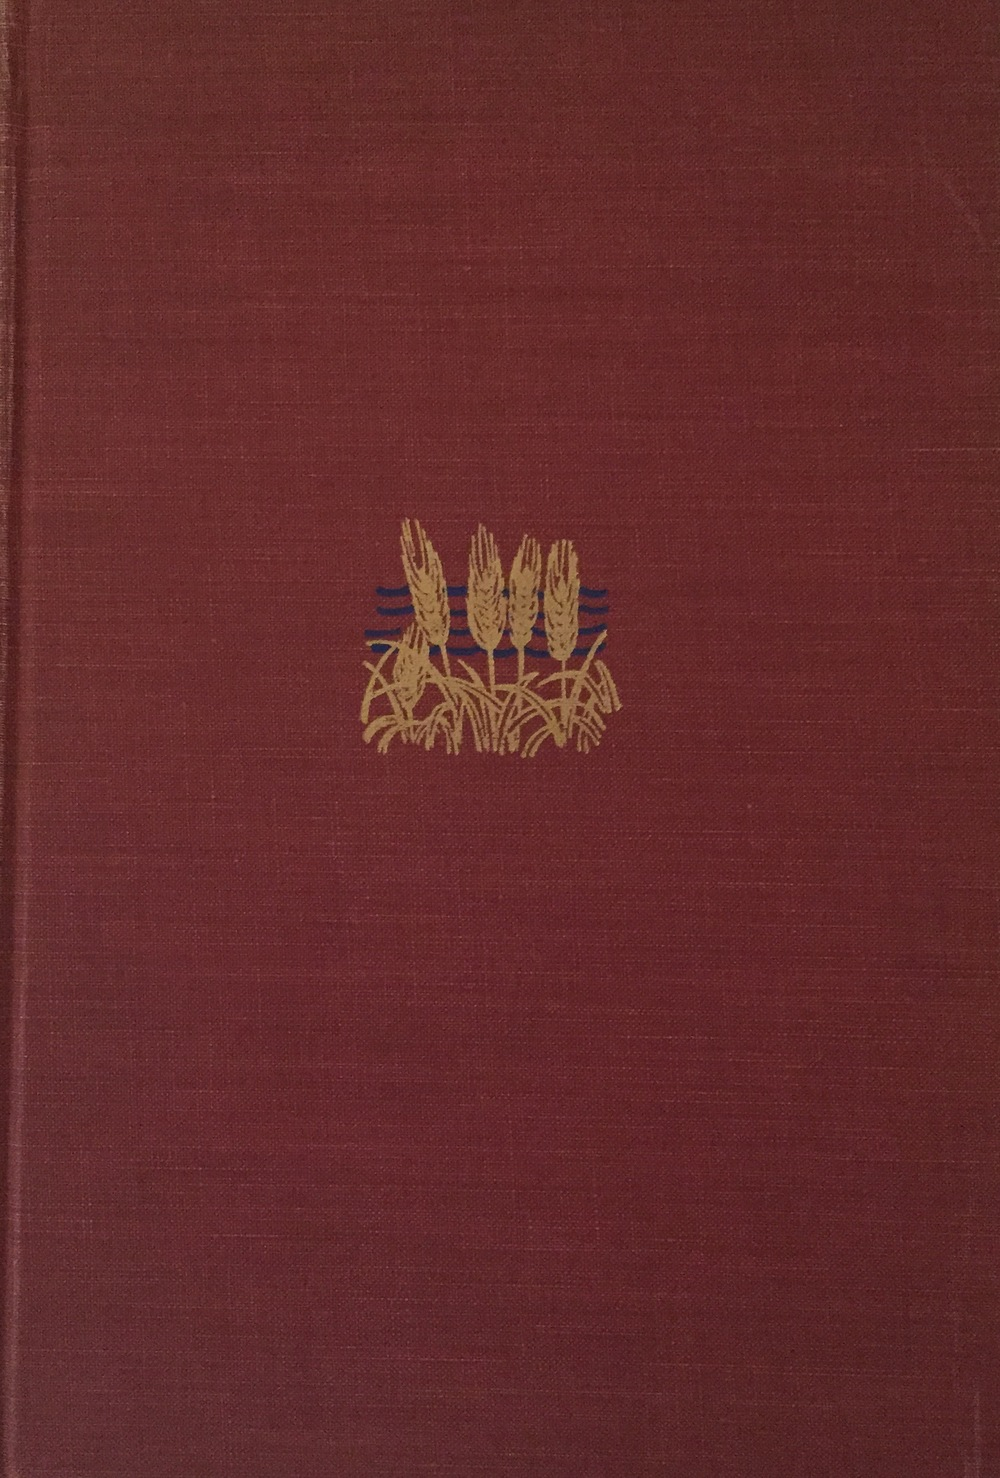 Book - The Barley and the Stream_The Molson Story 1955 cover.jpg